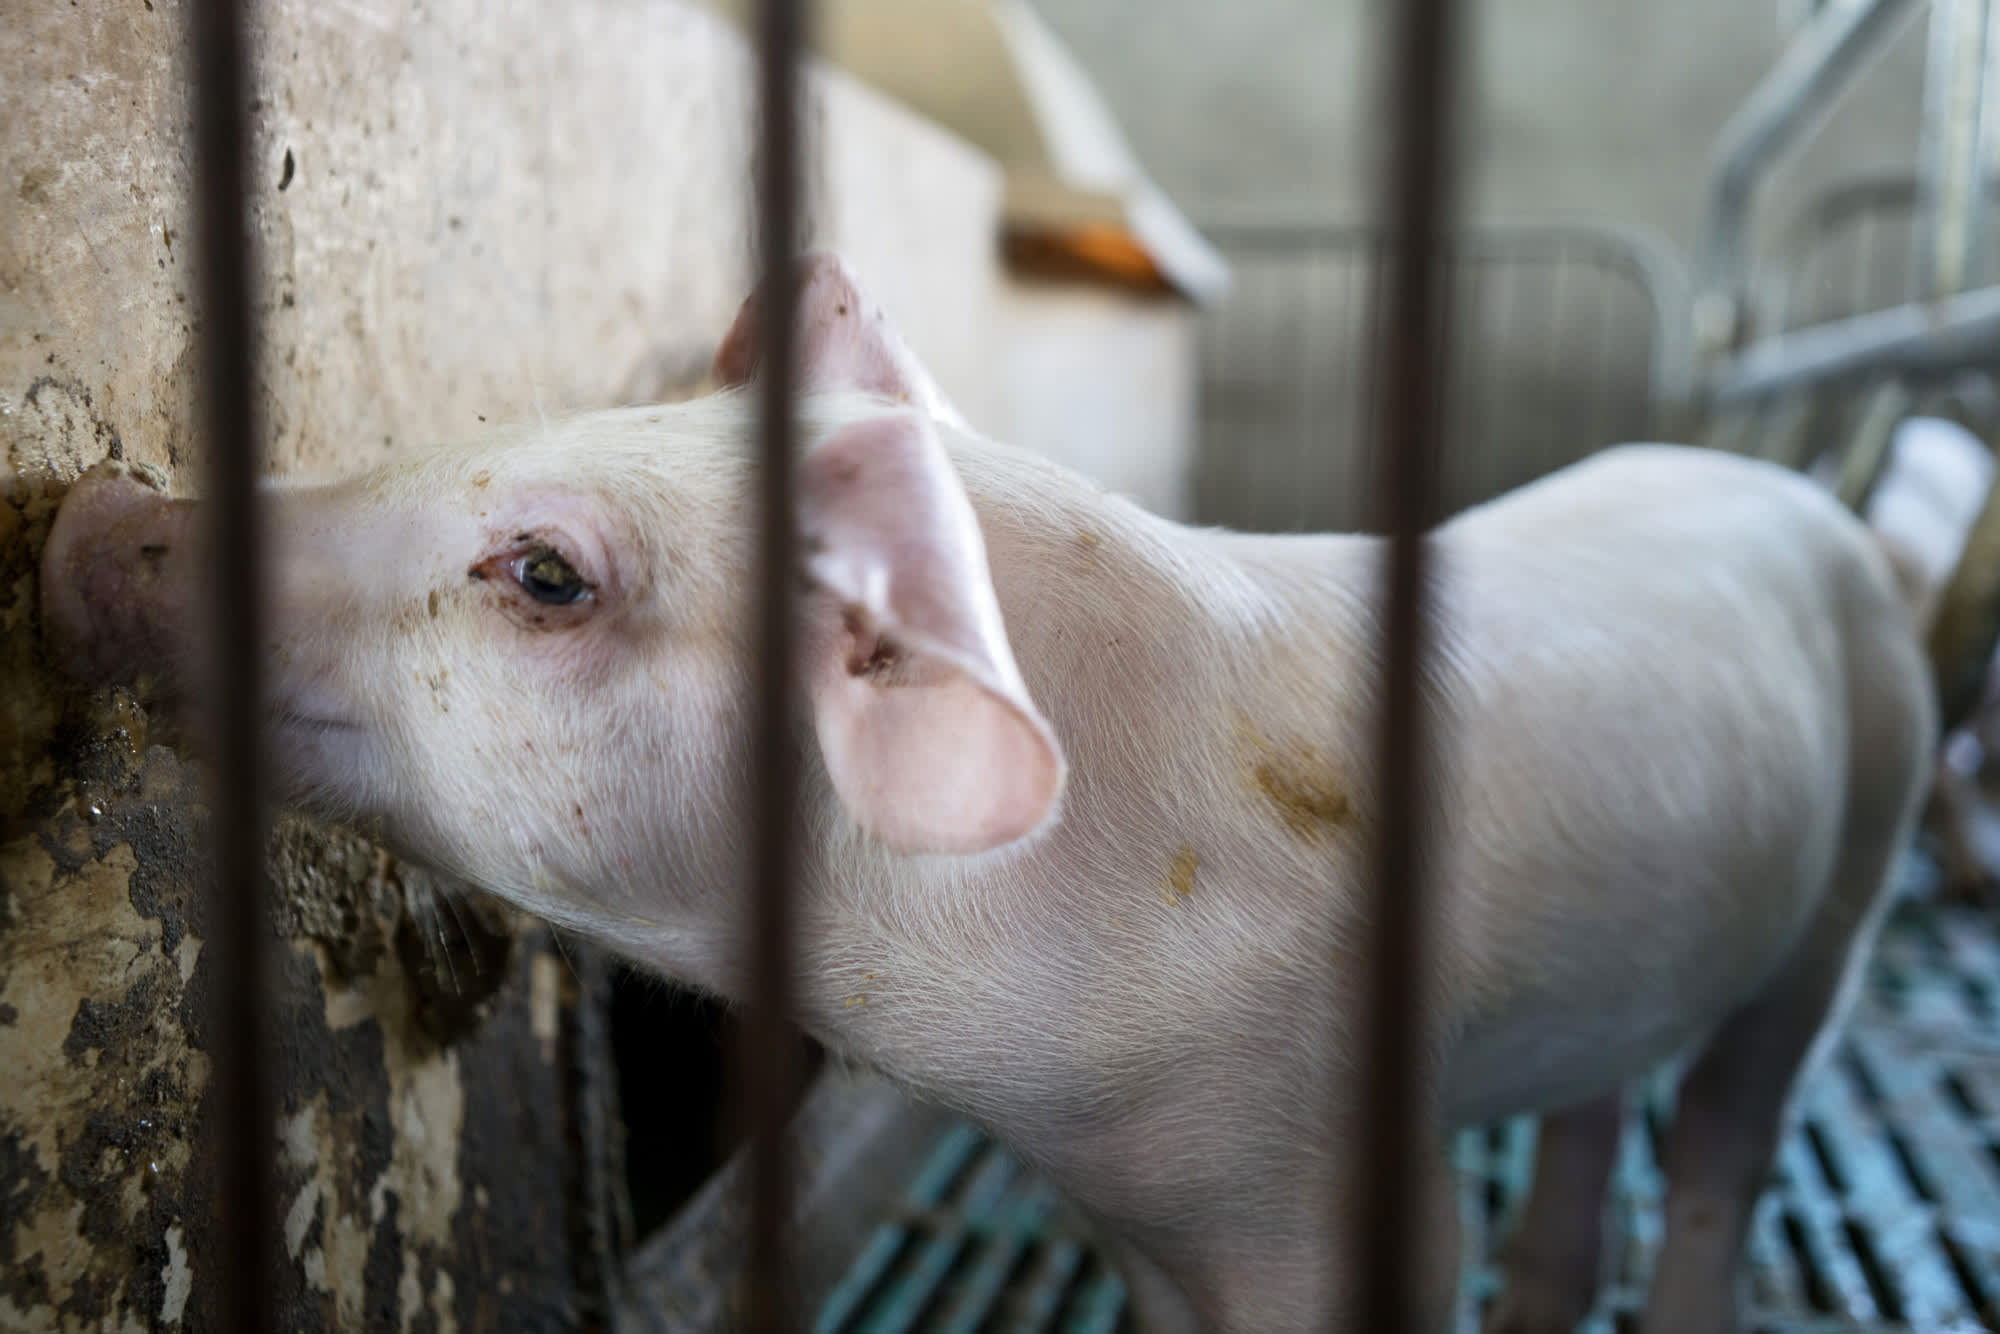 China's pork prices surge 47% in August amid swine fever outbreak